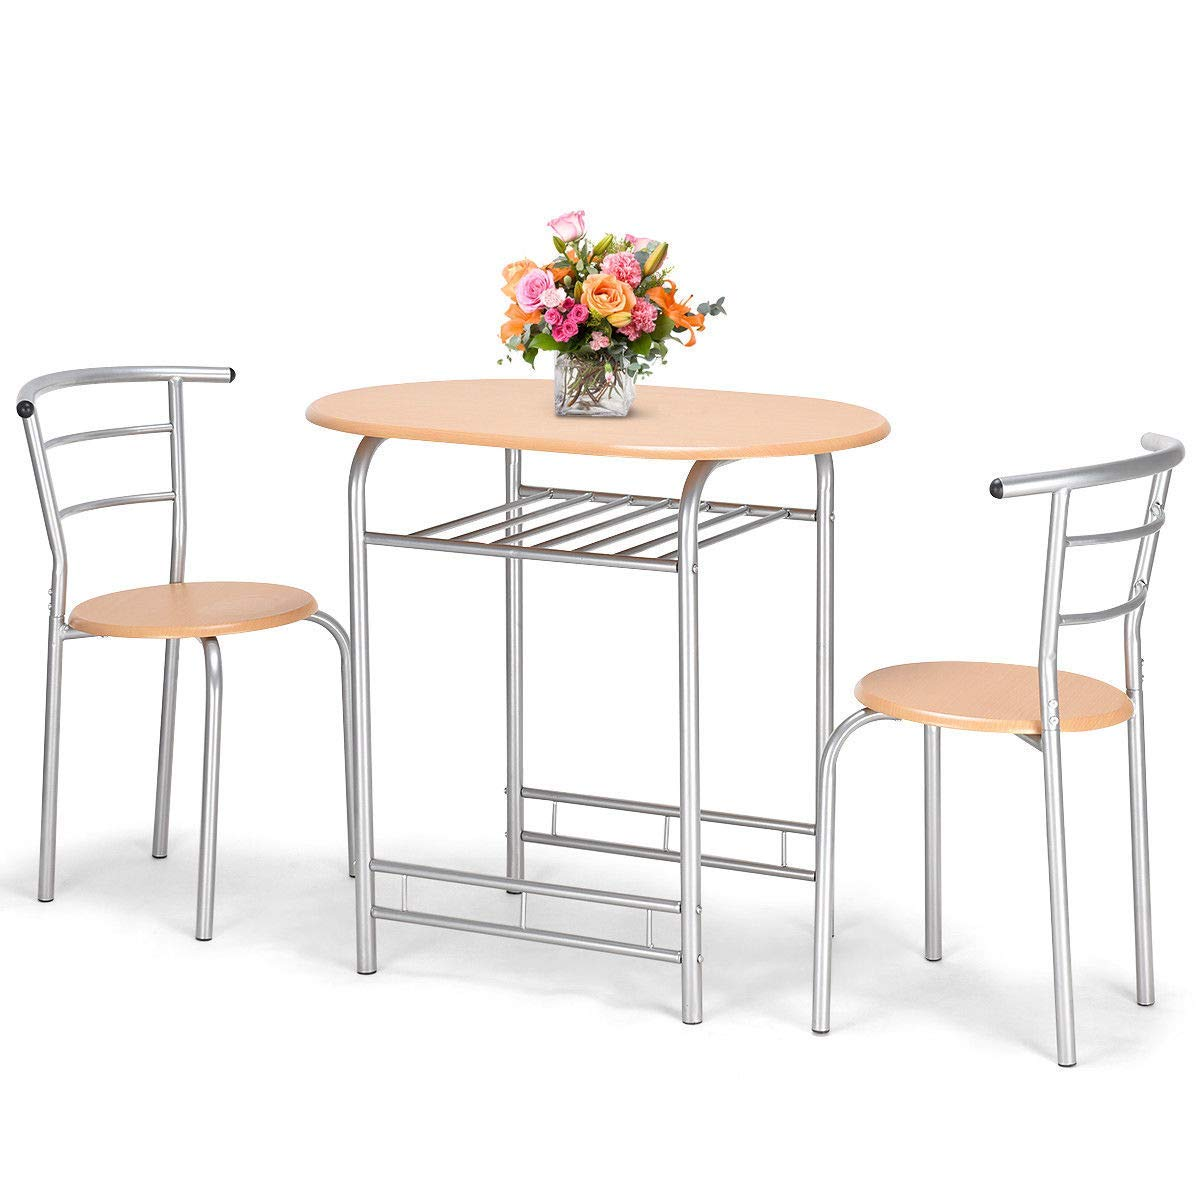 Giantex 3 PCS Bistro Dining Set Table and 2 Chairs Kitchen Furniture Pub Home Restaurant Table Chair Sets (Natural) by Giantex (Image #4)